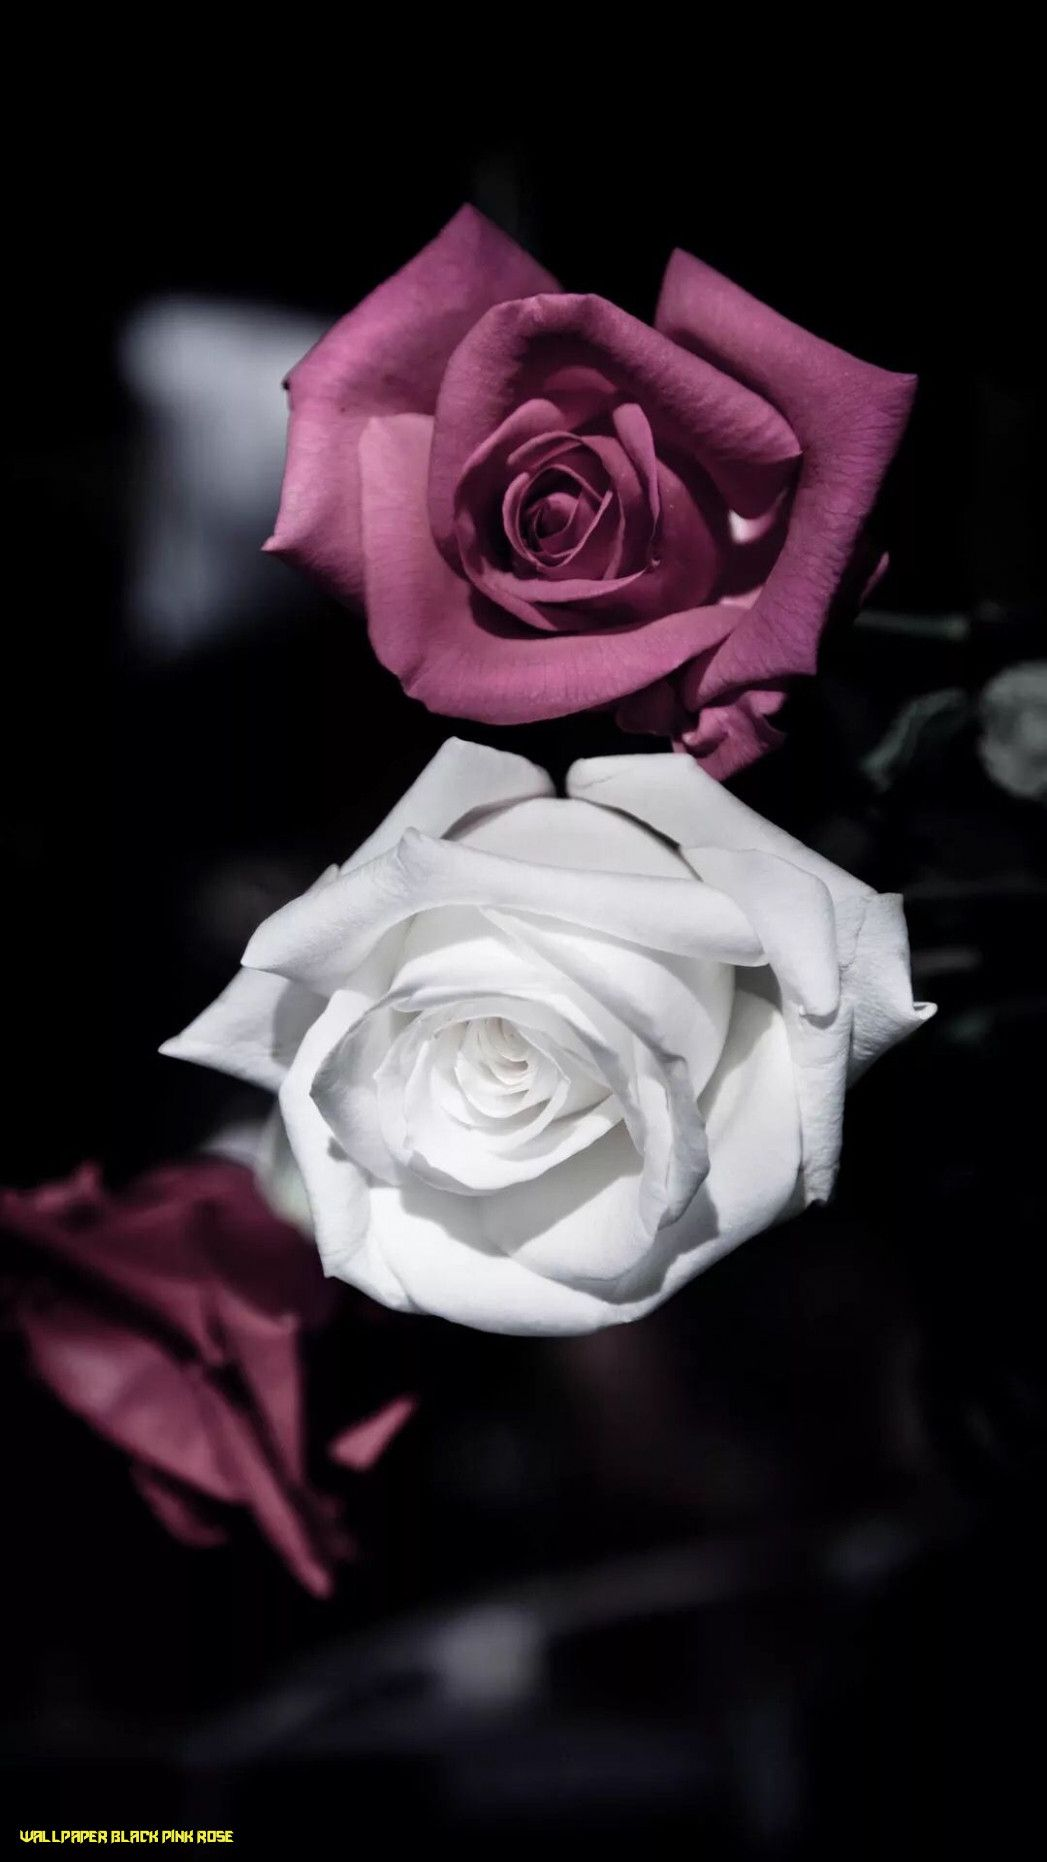 The 13 Secrets You Will Never Know About Wallpaper Black Pink Rose Wallpaper Black Pink Rose Floral Iphone Dark Flowers Rose Wallpaper